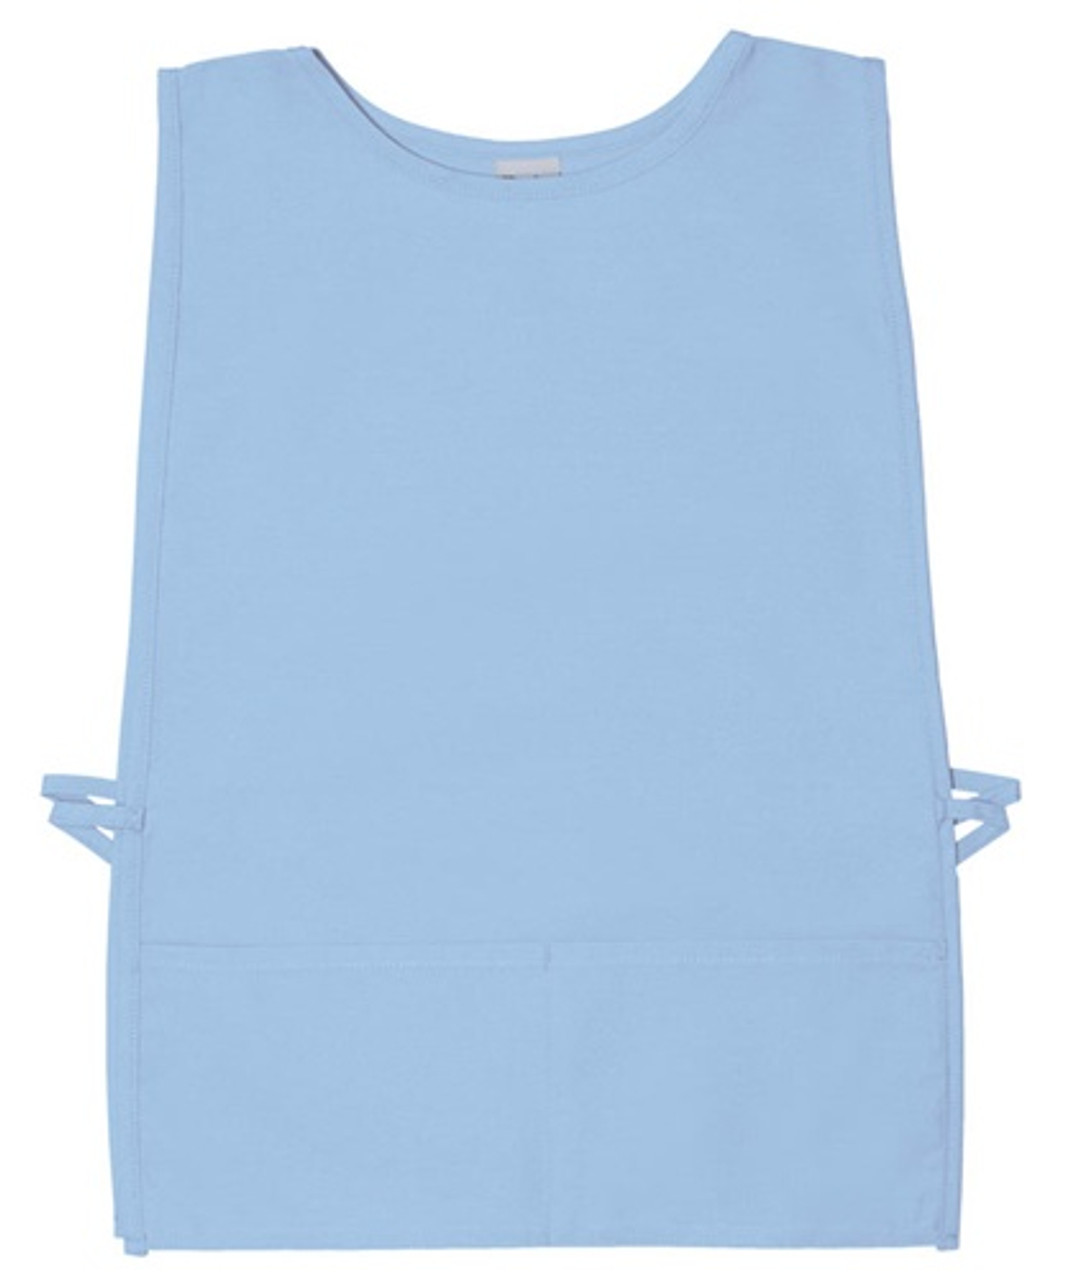 Personalized Squared Rounded Neck Cobbler Apron with 2 Pockets